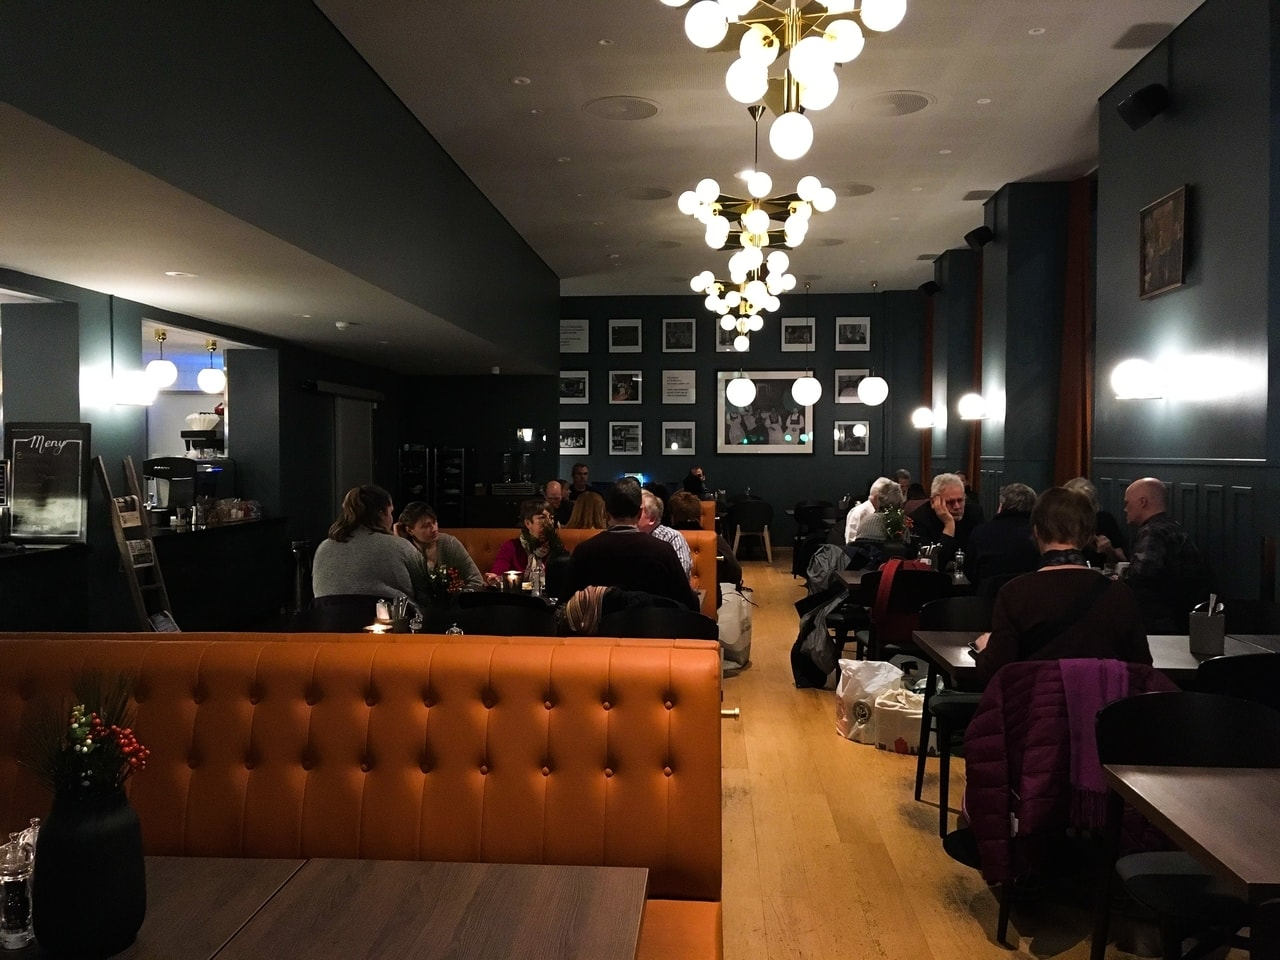 Kaffistova Restaurant in Oslo, which offers discounts with the Oslo Pass.